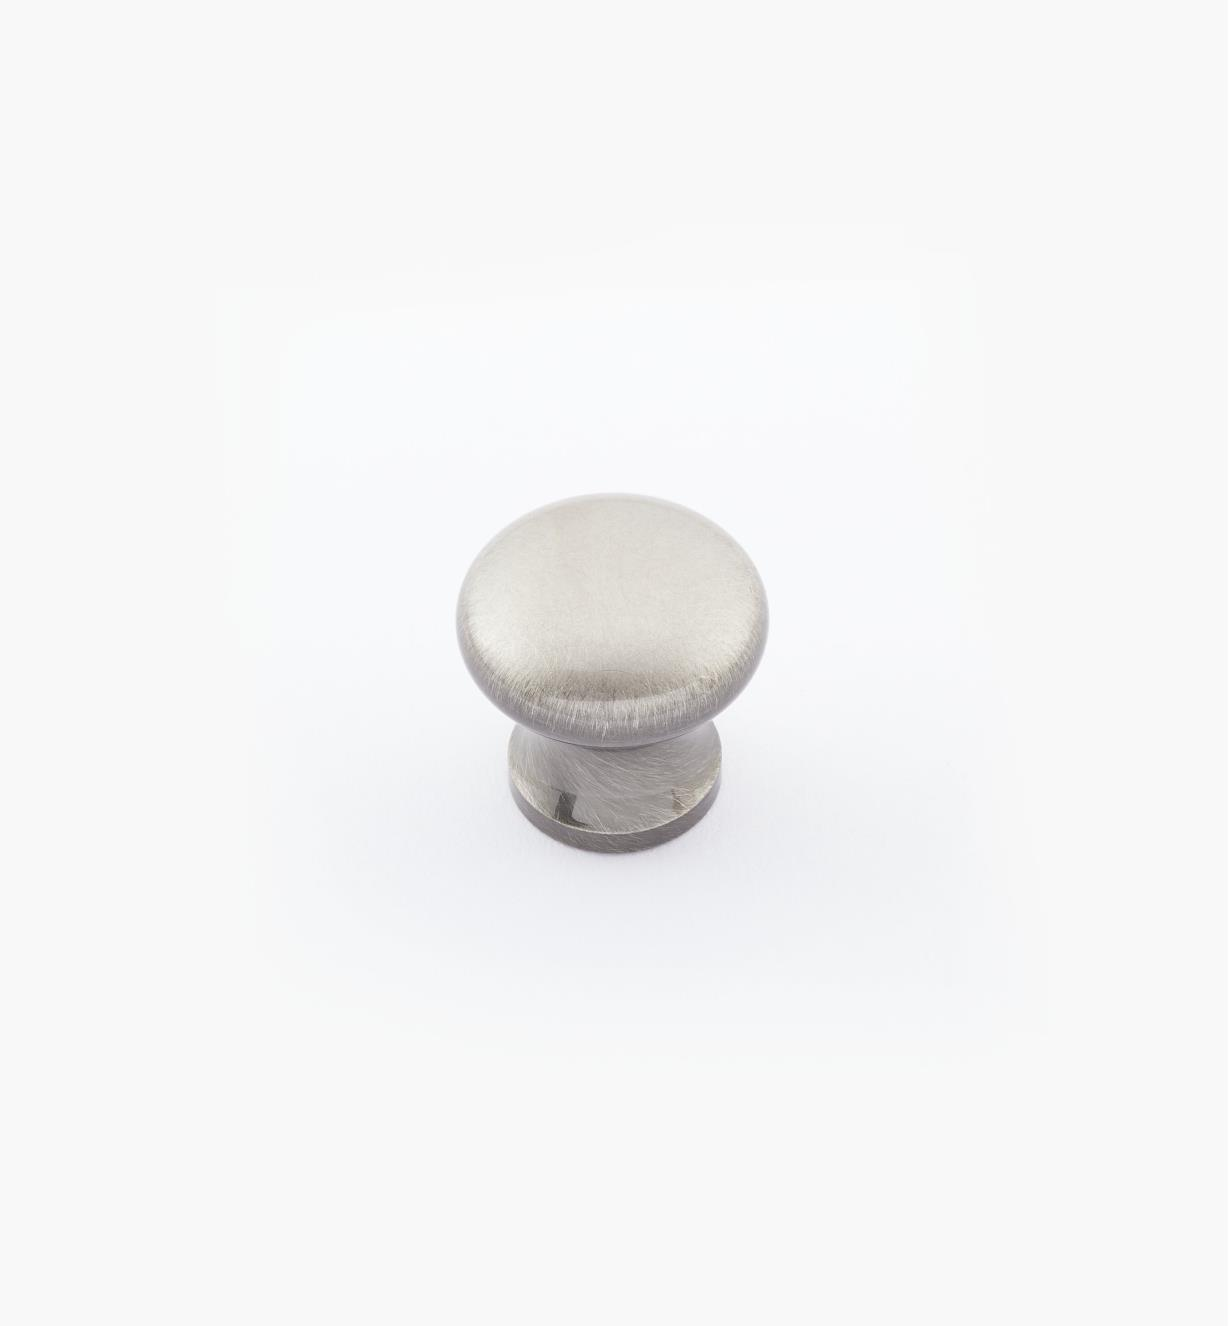 "02W2728 - 5/8"" × 5/8"" Round Brass Knob, Antique Nickel"